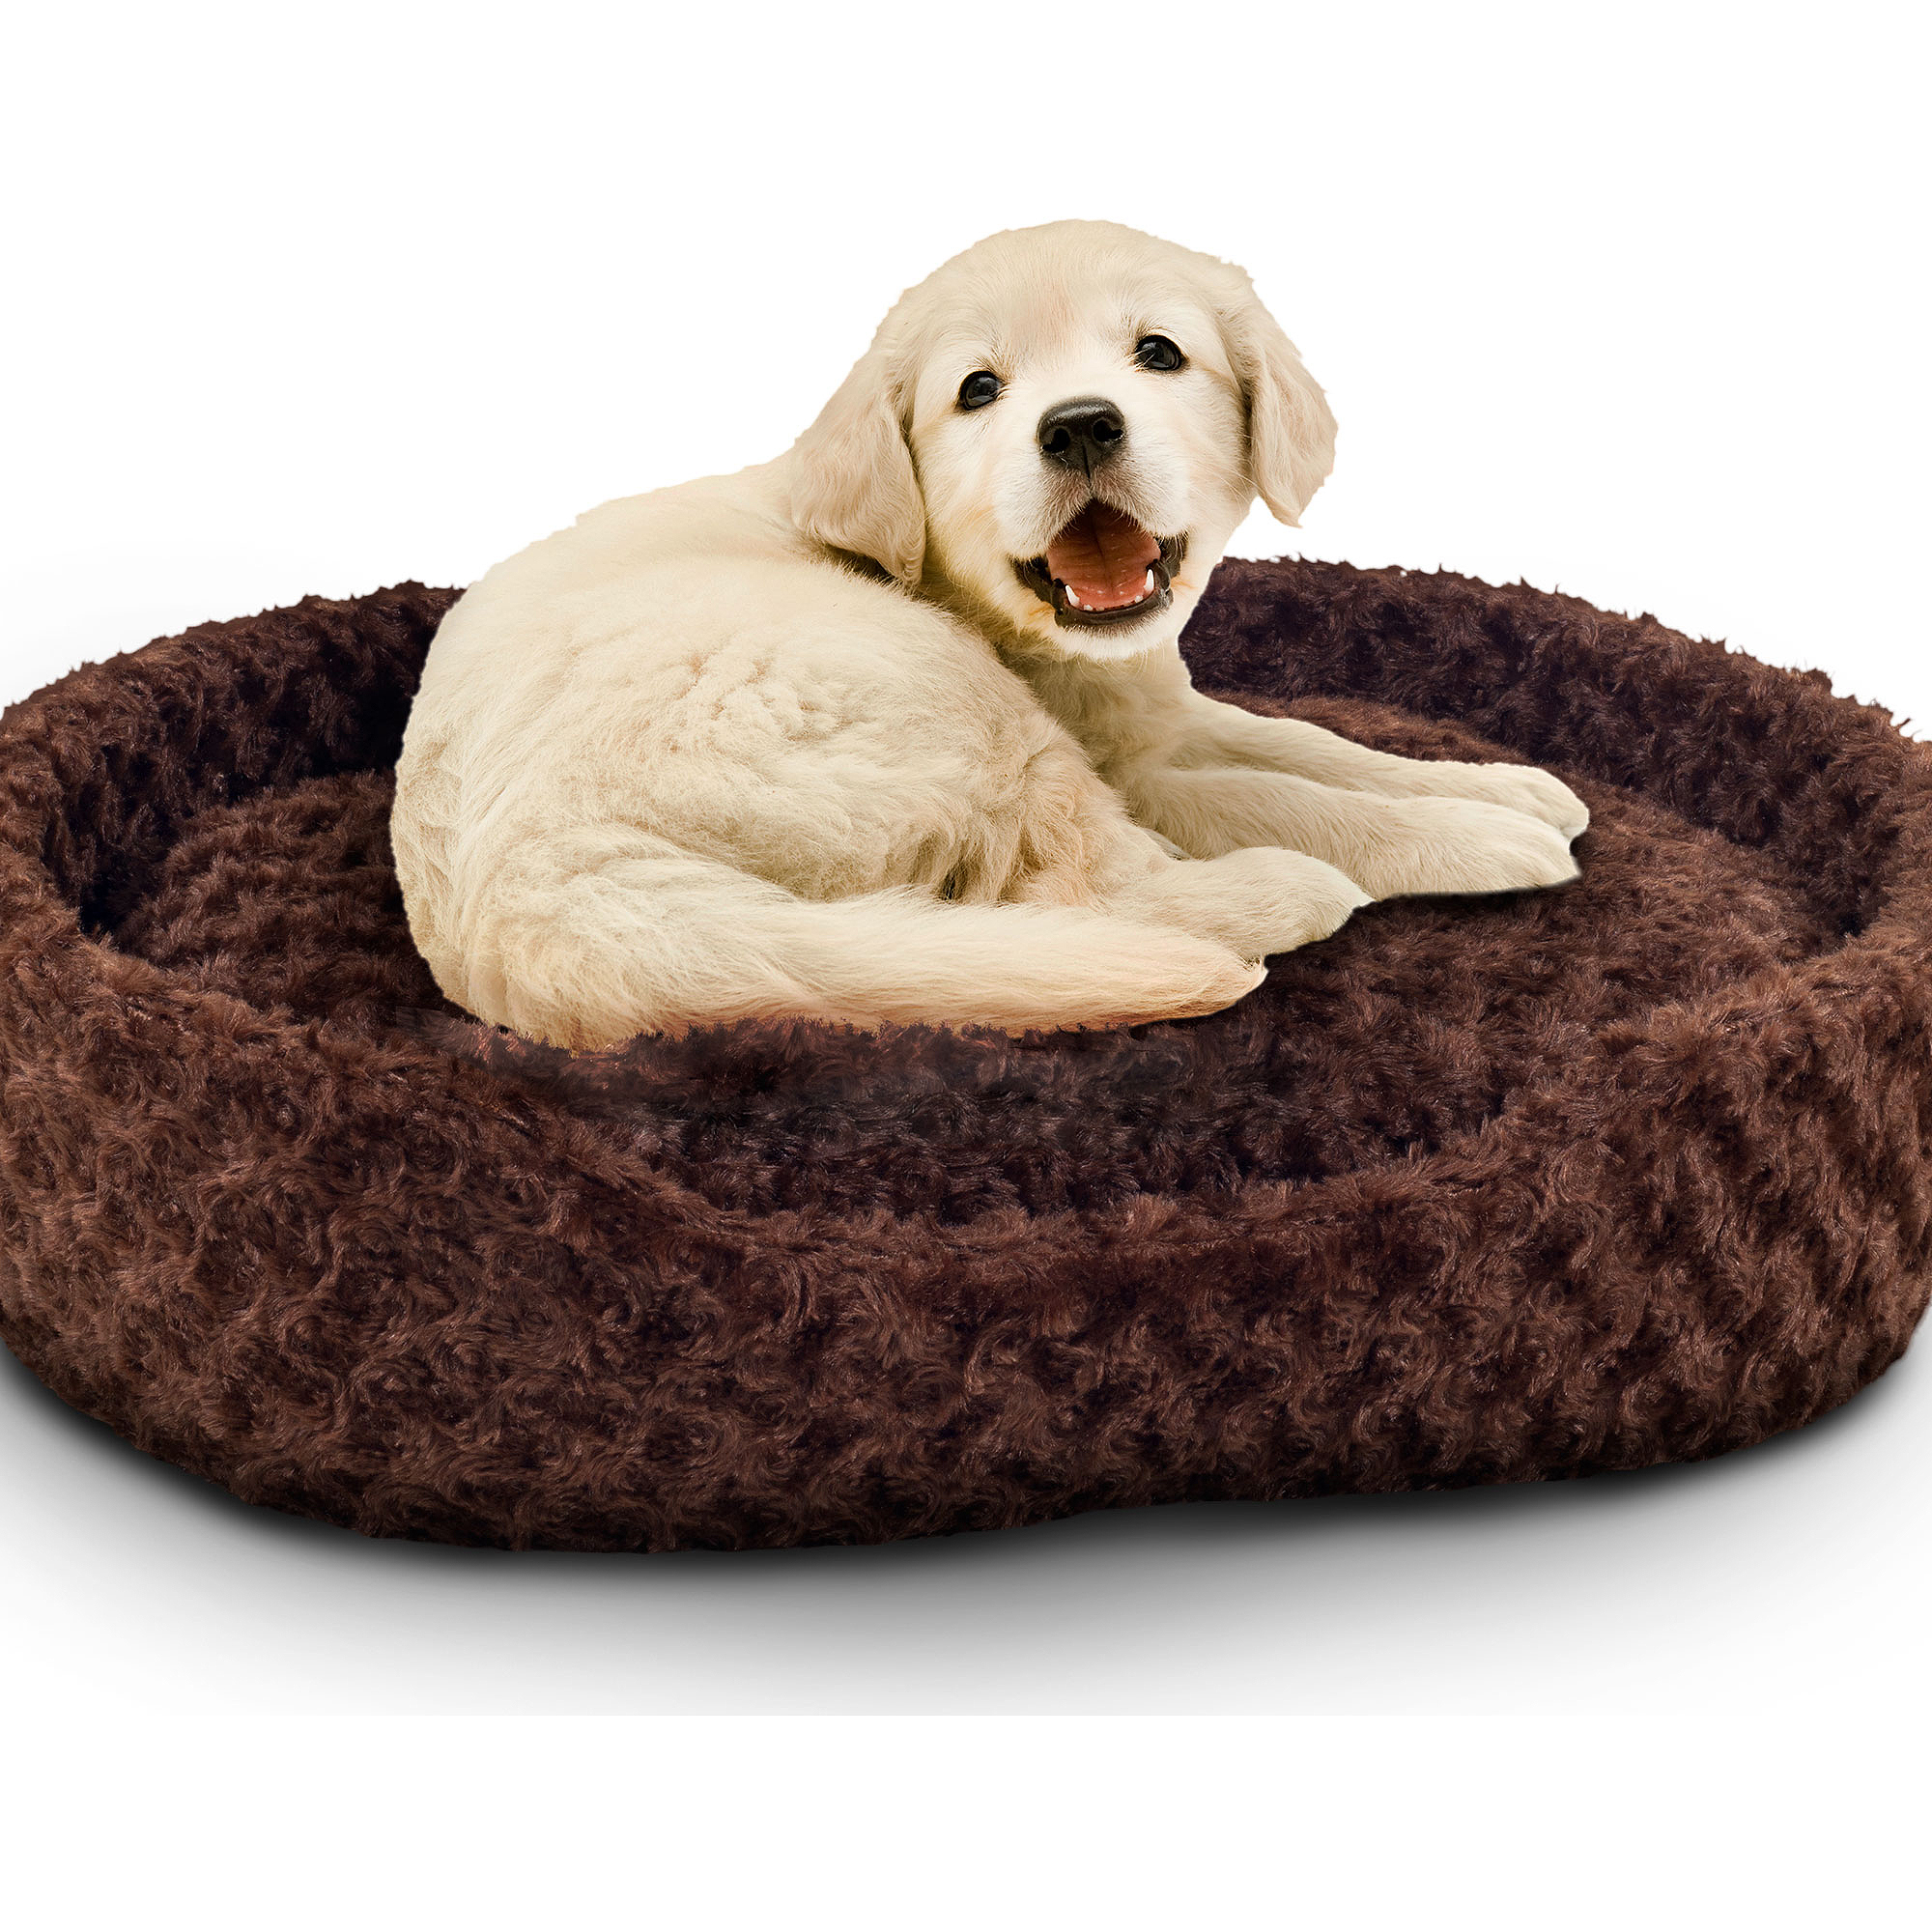 pet sofas australia jcpenney sofa table aldi dog bed baci living room